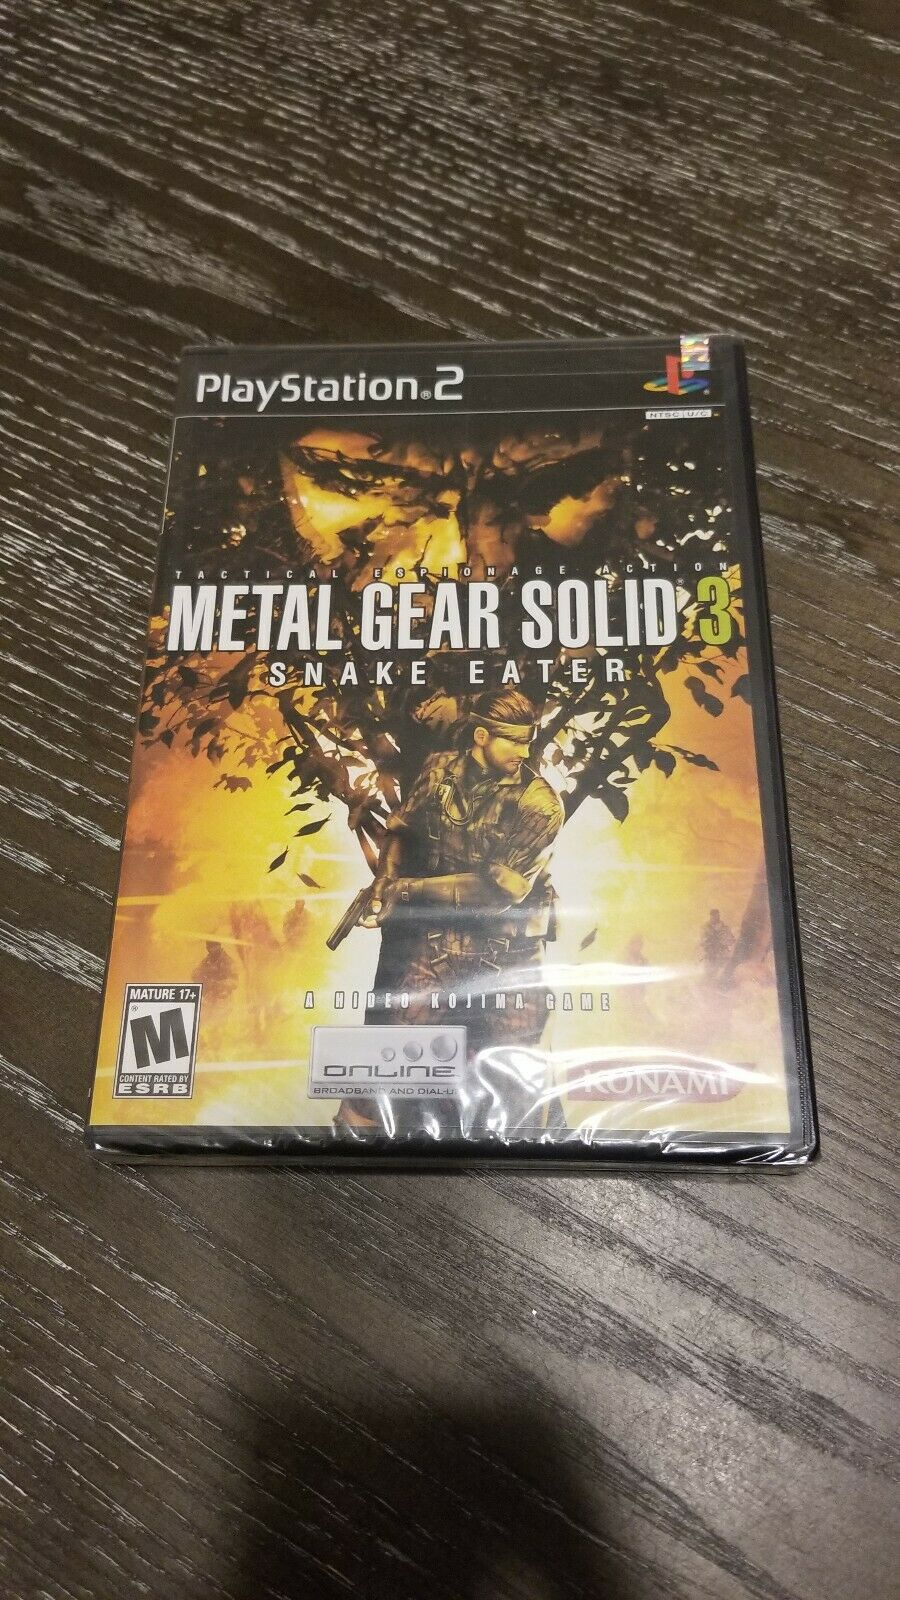 Metal Gear Solid 3 Snake Eater Sony Playstation 2 2004 For Sale Online Ebay